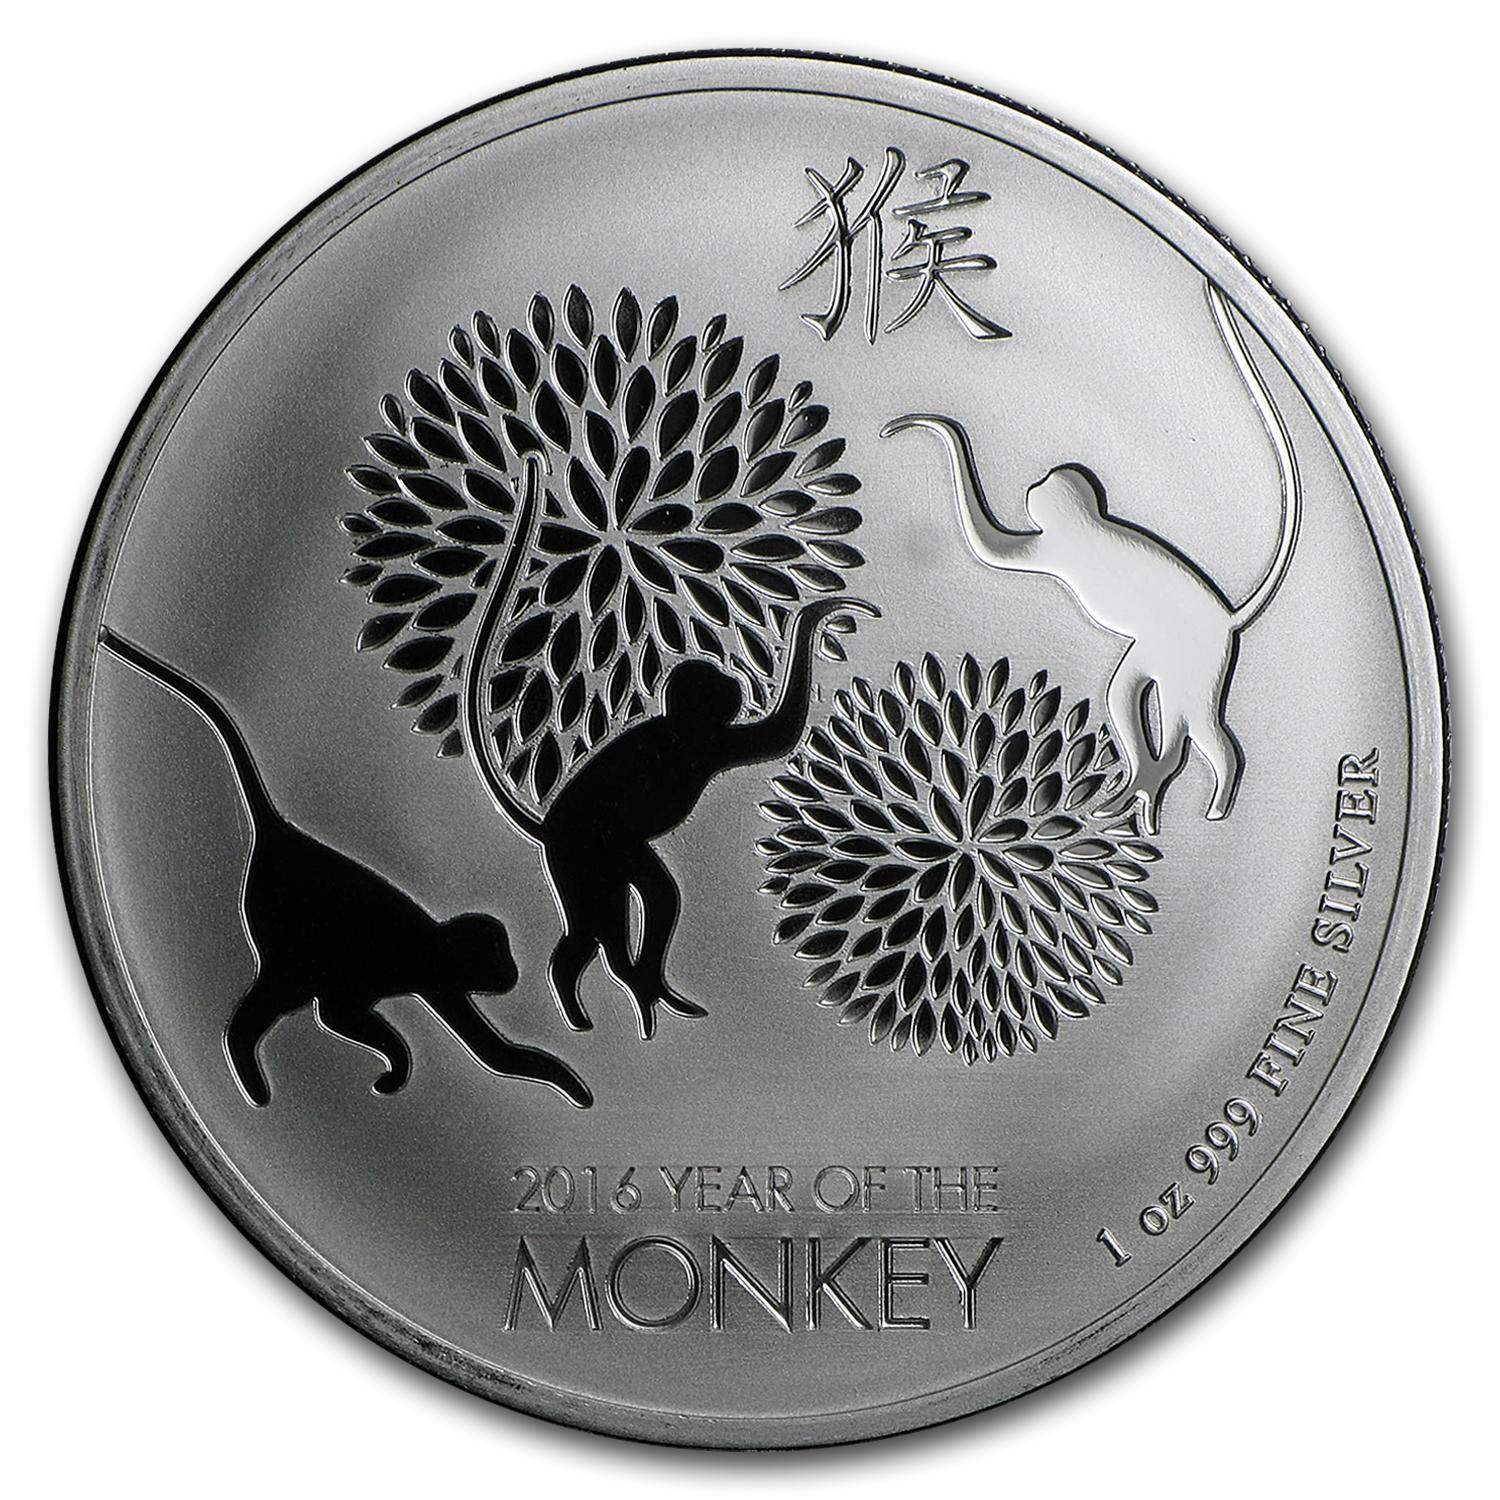 2016 New Zealand 1 oz Silver $2 Lunar Monkey